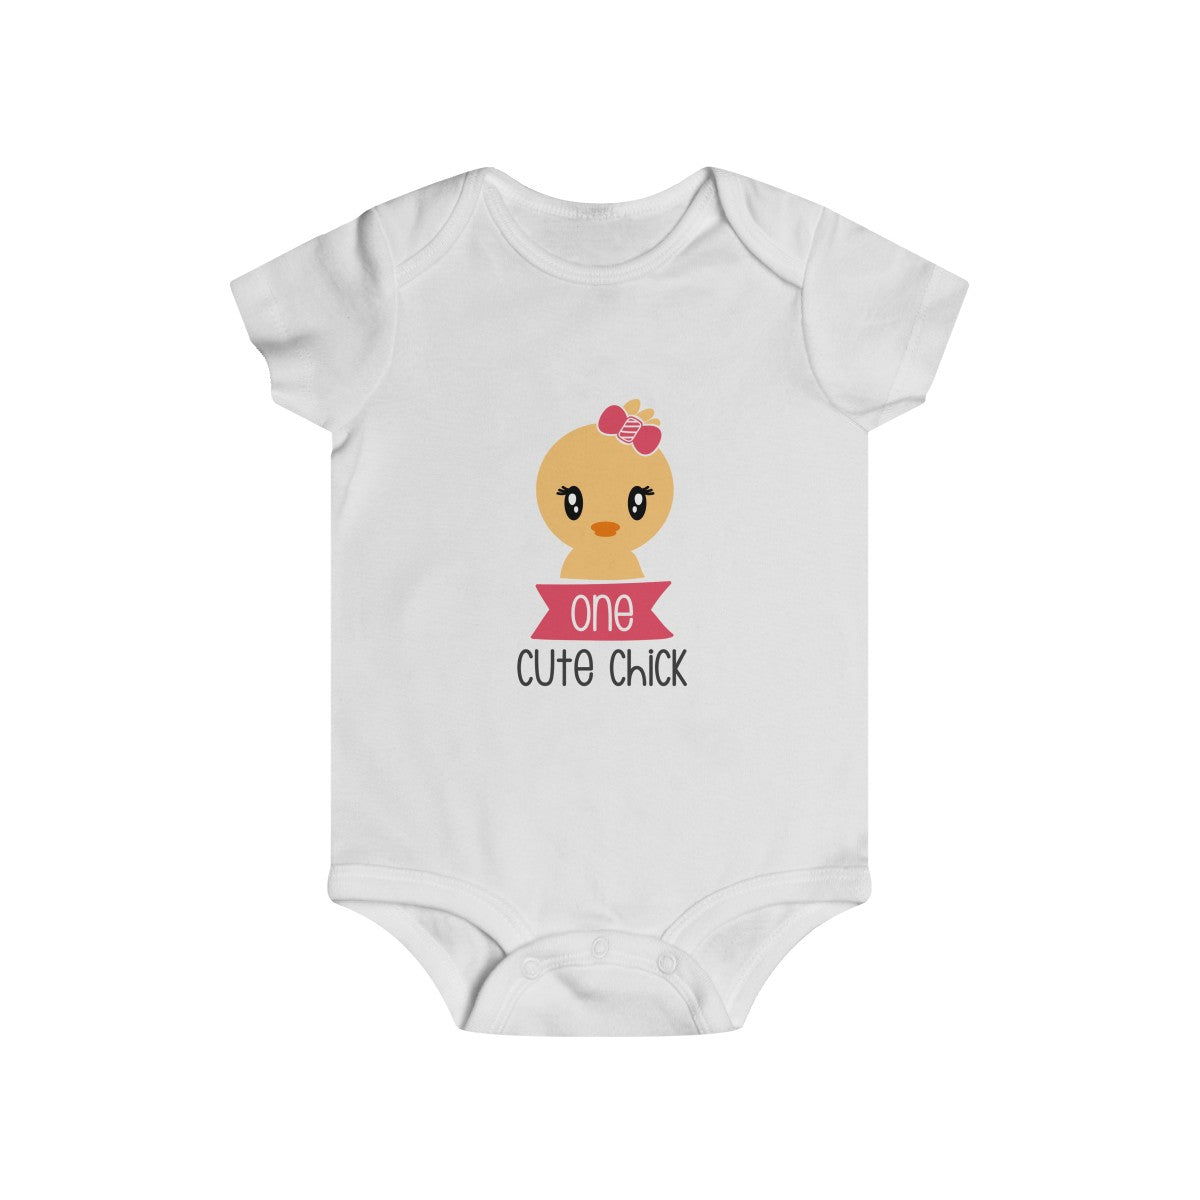 One Cute Chic Infant Rip Snap Tee